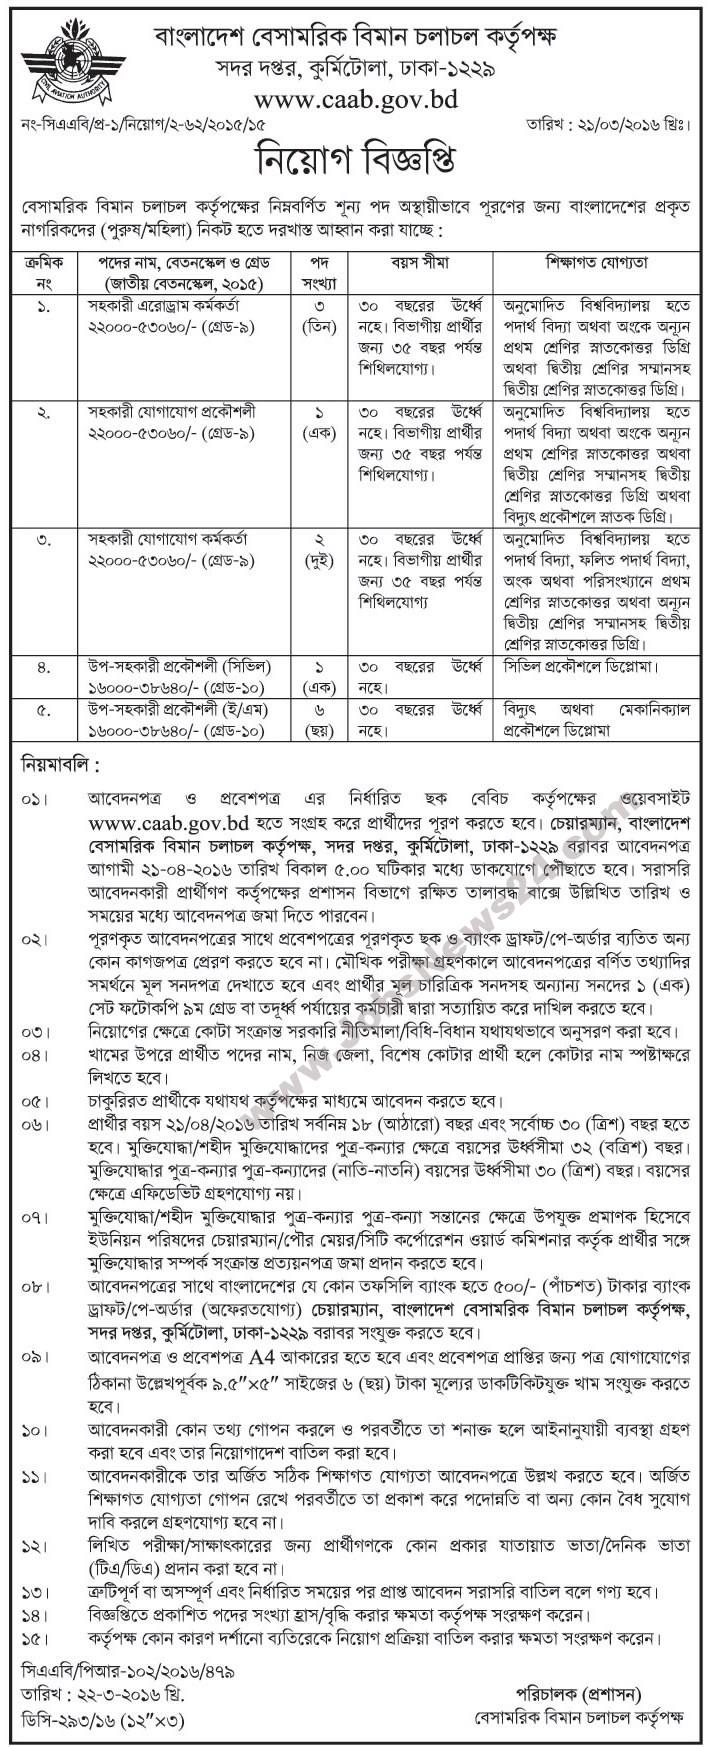 Job Circular of Civil Aviation Authority,Bangladesh